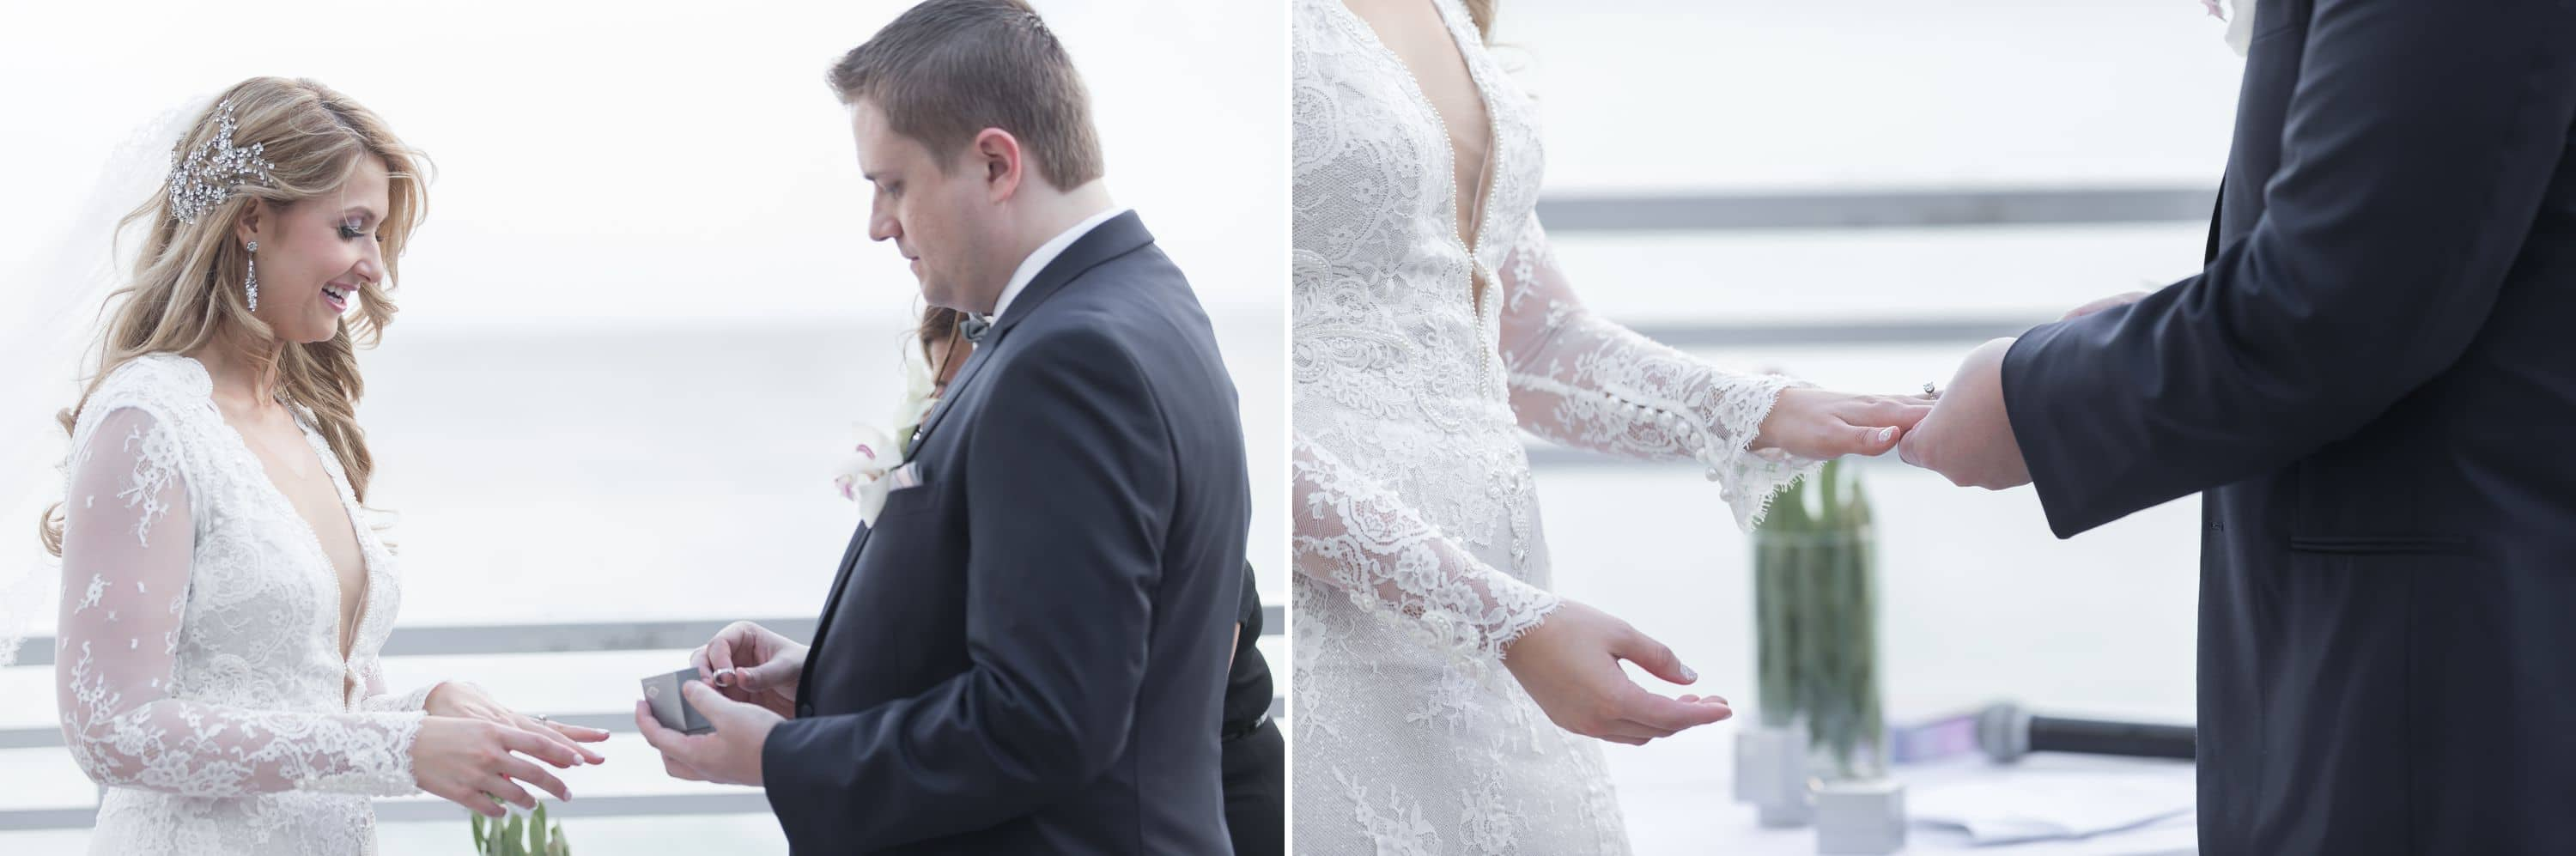 A photo of the ring exchange at a Diplomat Beach Resort Wedding